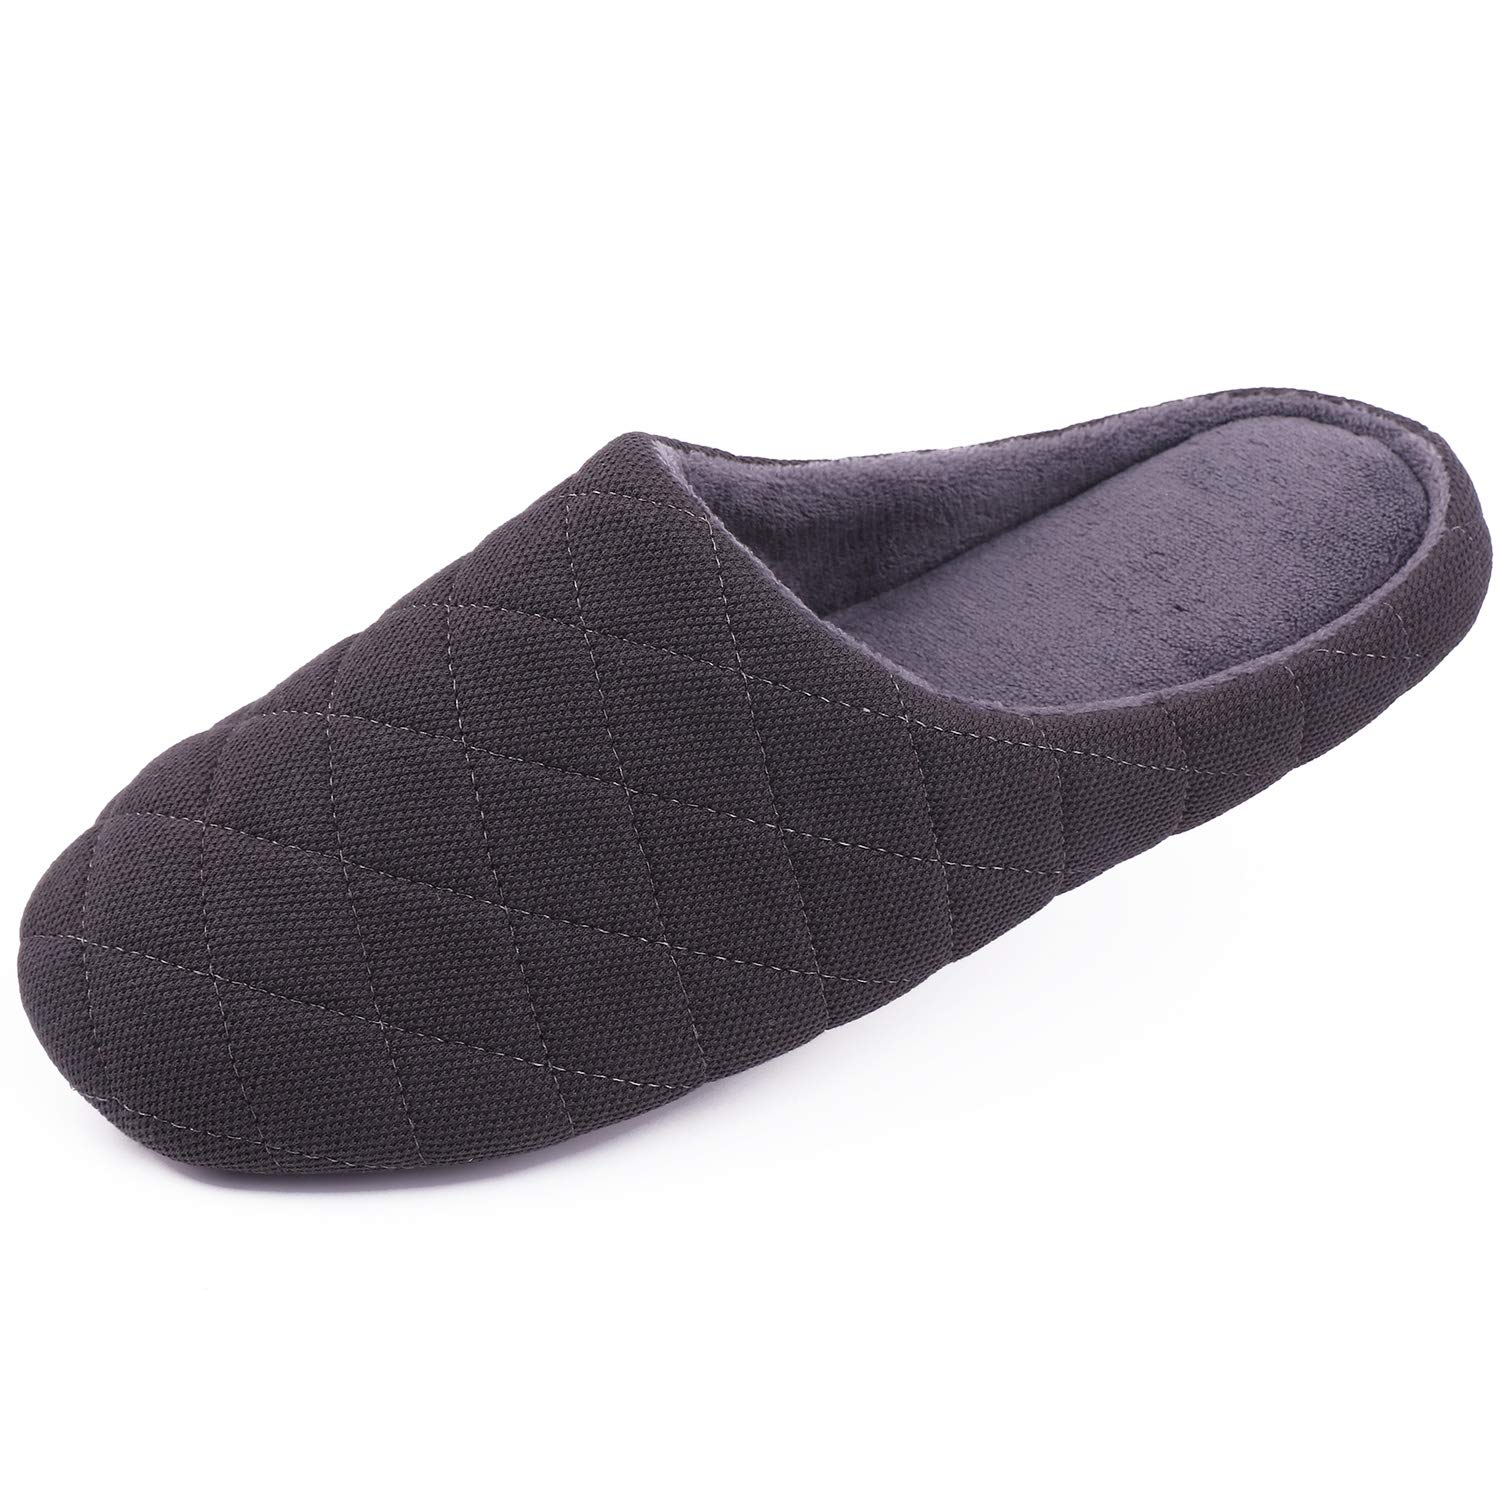 HomeTop Men's Comfort Quilted Cotton Memory Foam House Slippers Slip On House Shoes